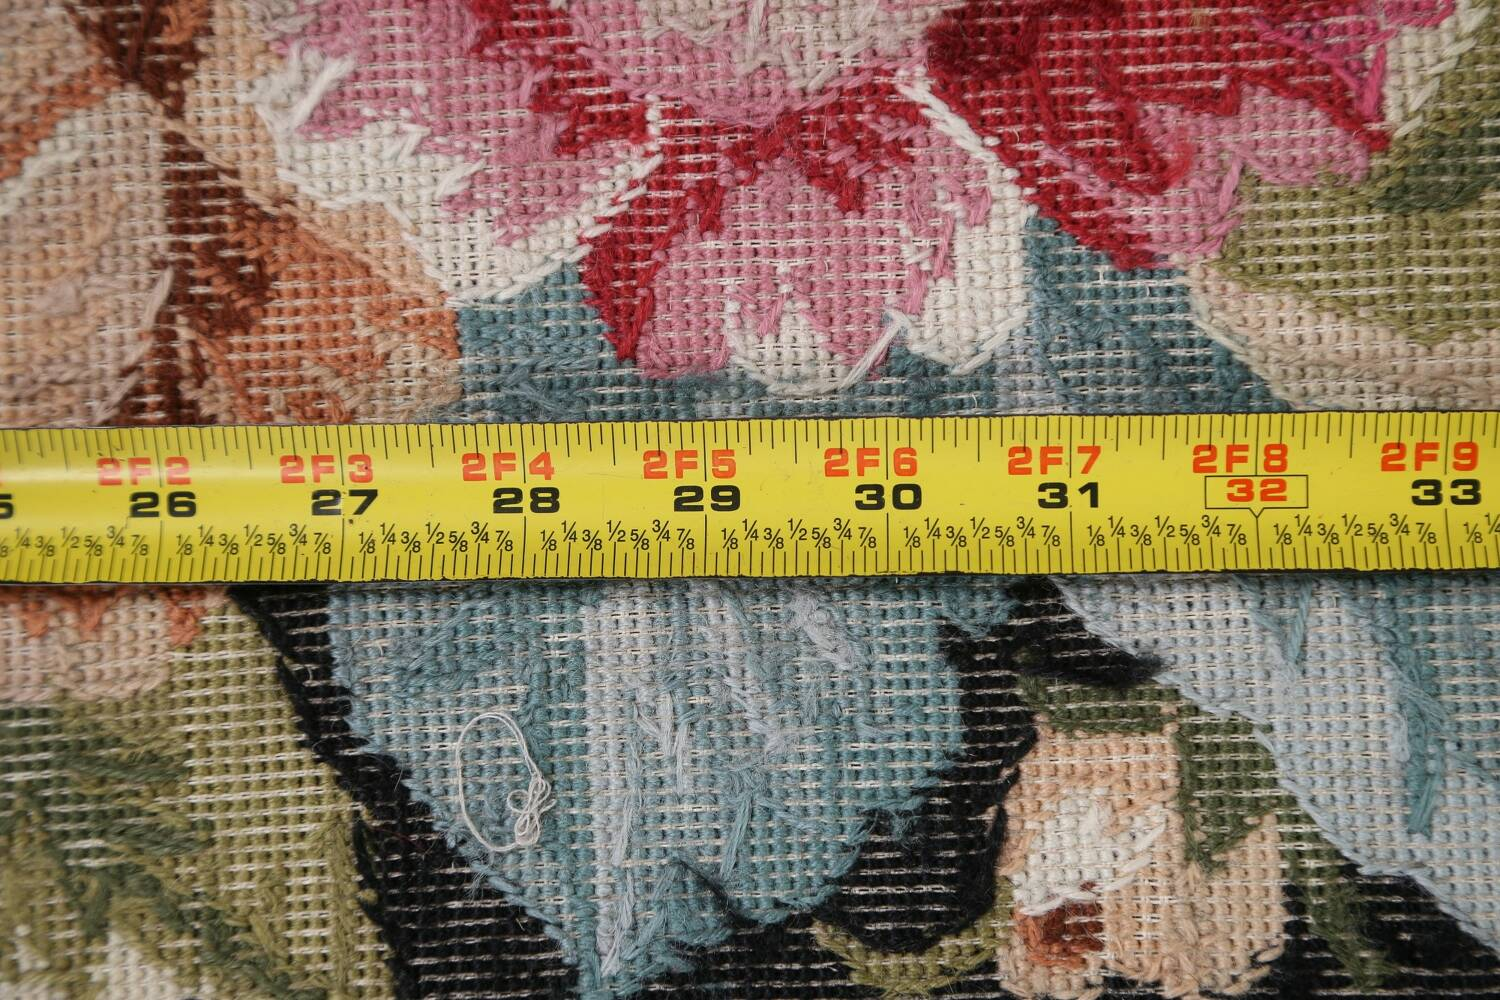 All-Over Floral Needlepoint Oriental Area Rug 10x14 image 19